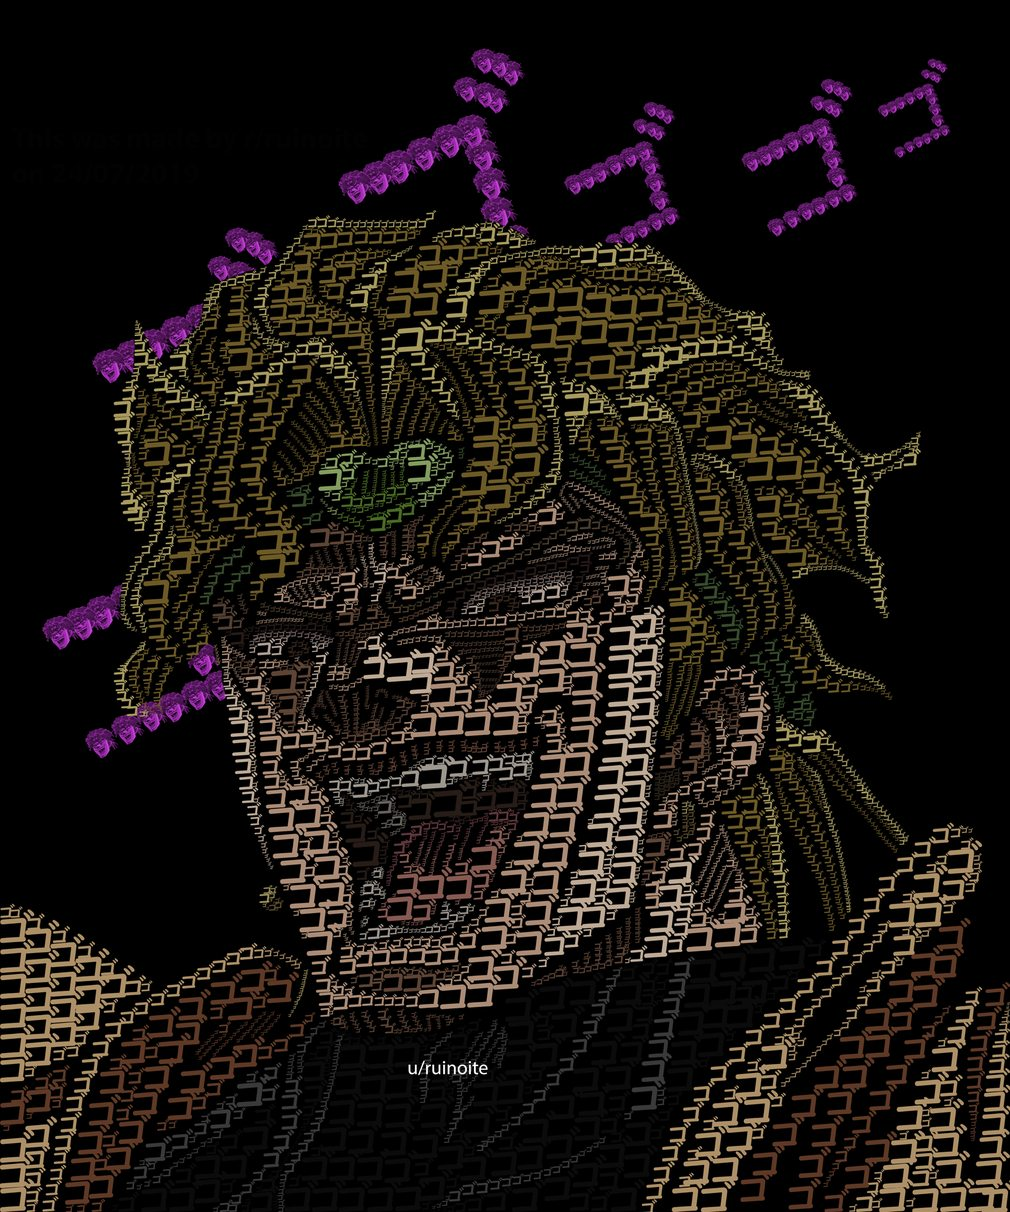 A very menacing Dio - meme